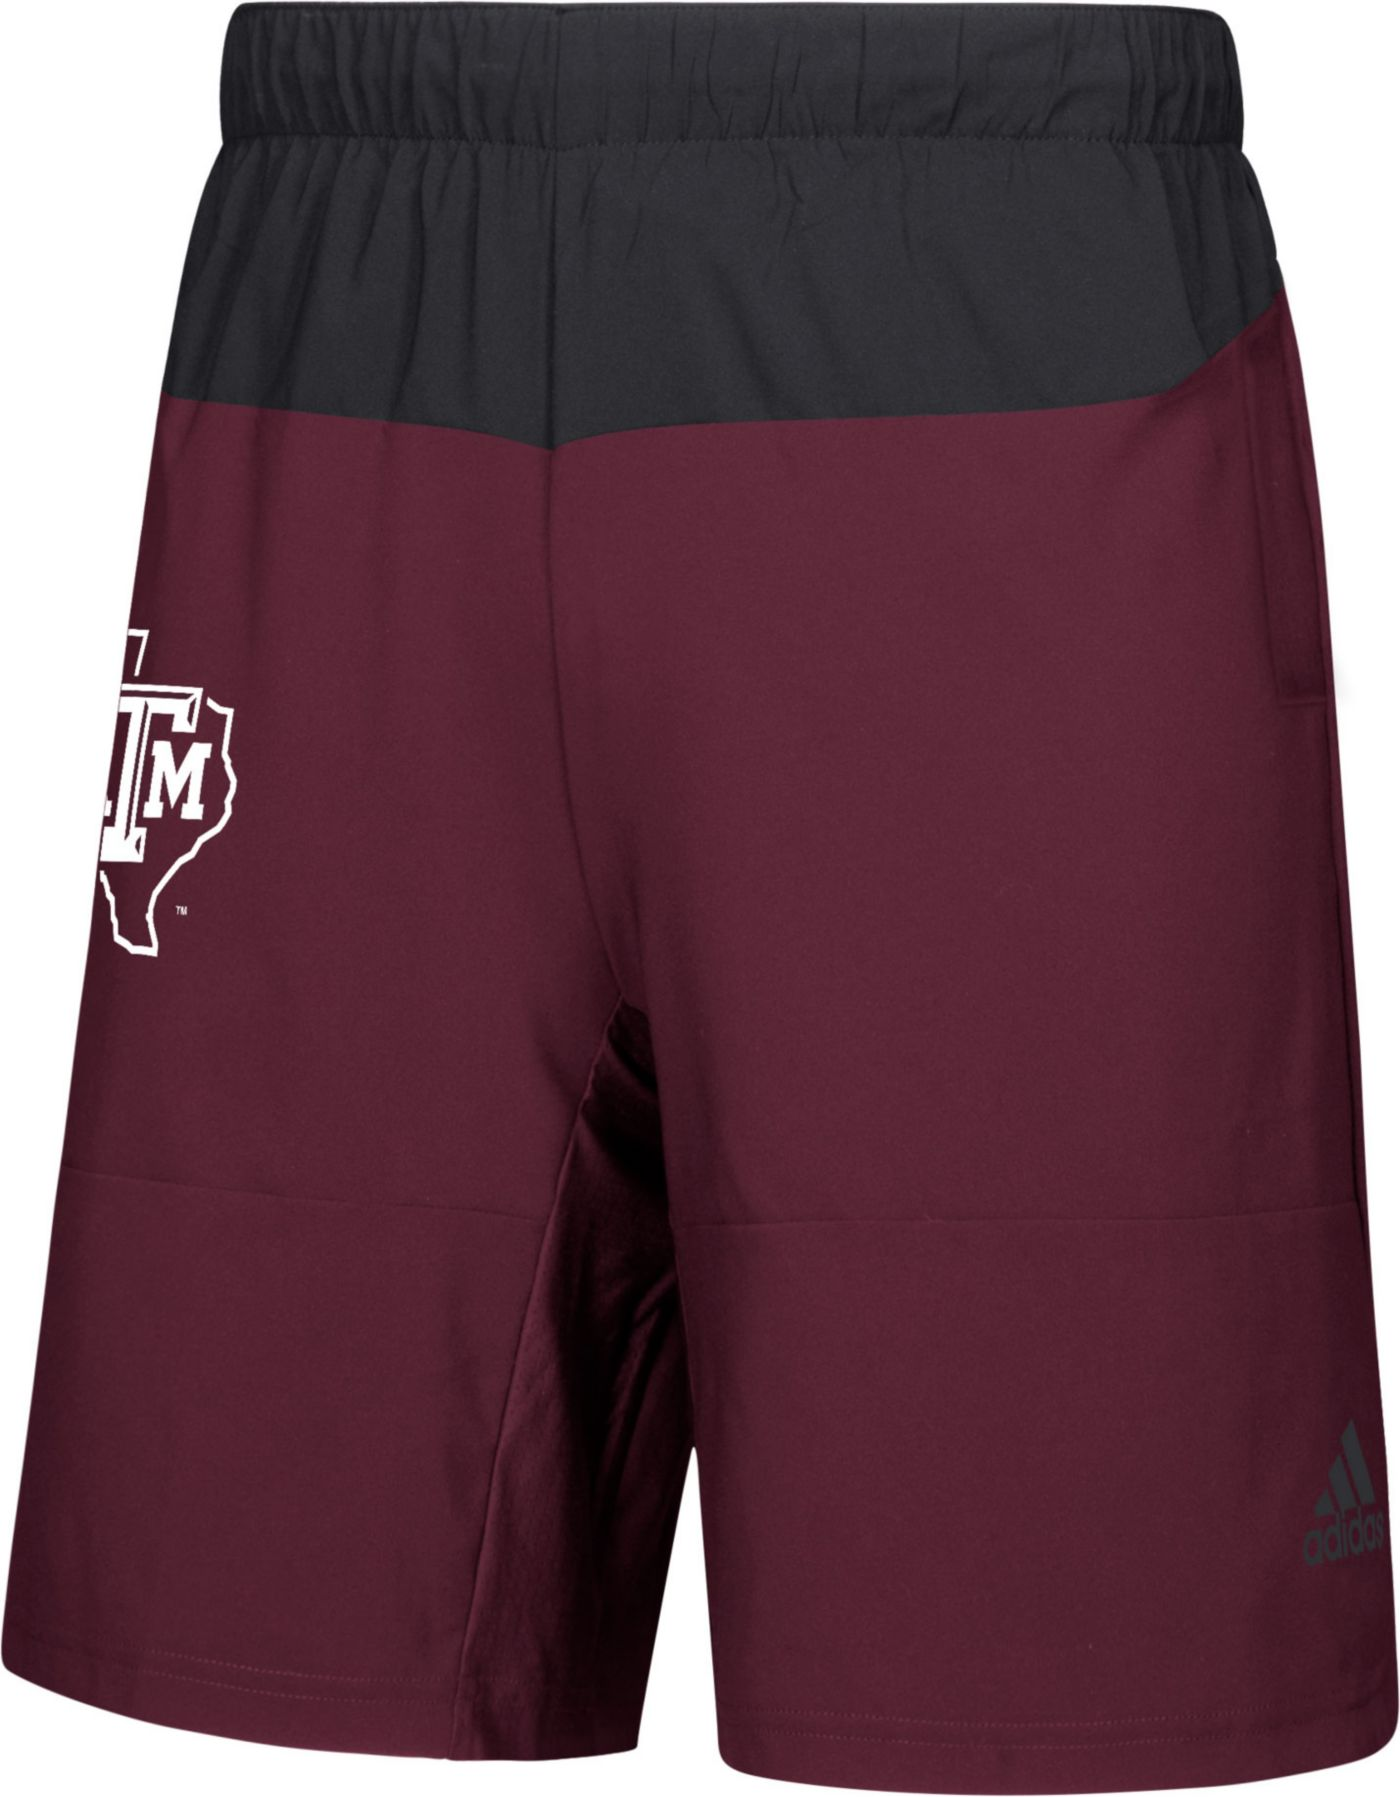 adidas Men's Texas A&M Aggies Maroon Sideline Game Mode Woven Shorts